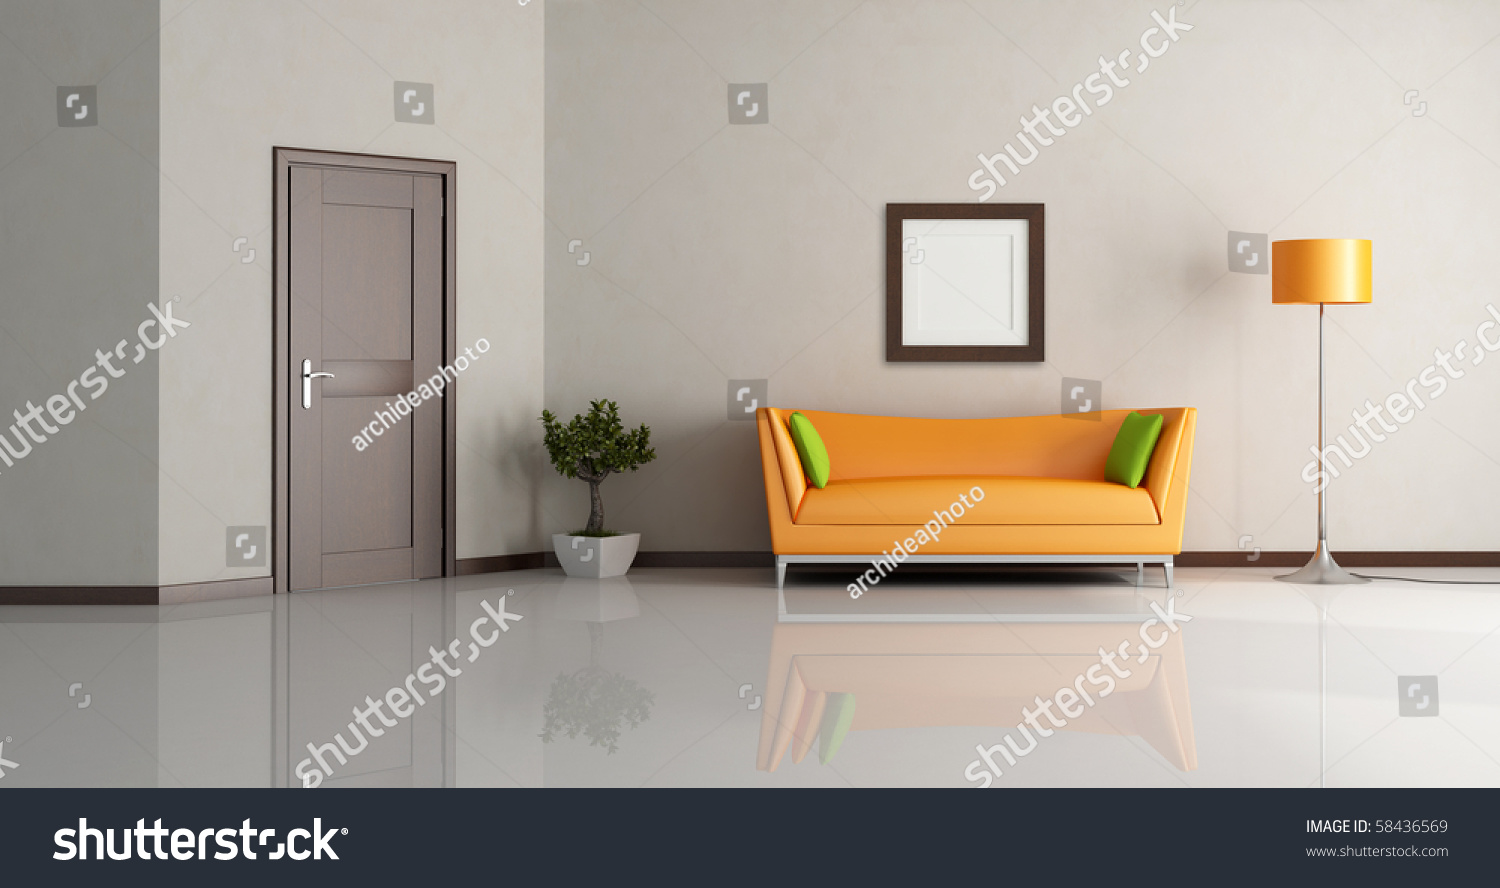 Modern living room with orange couch and wooden door rendering preview save to a lightbox